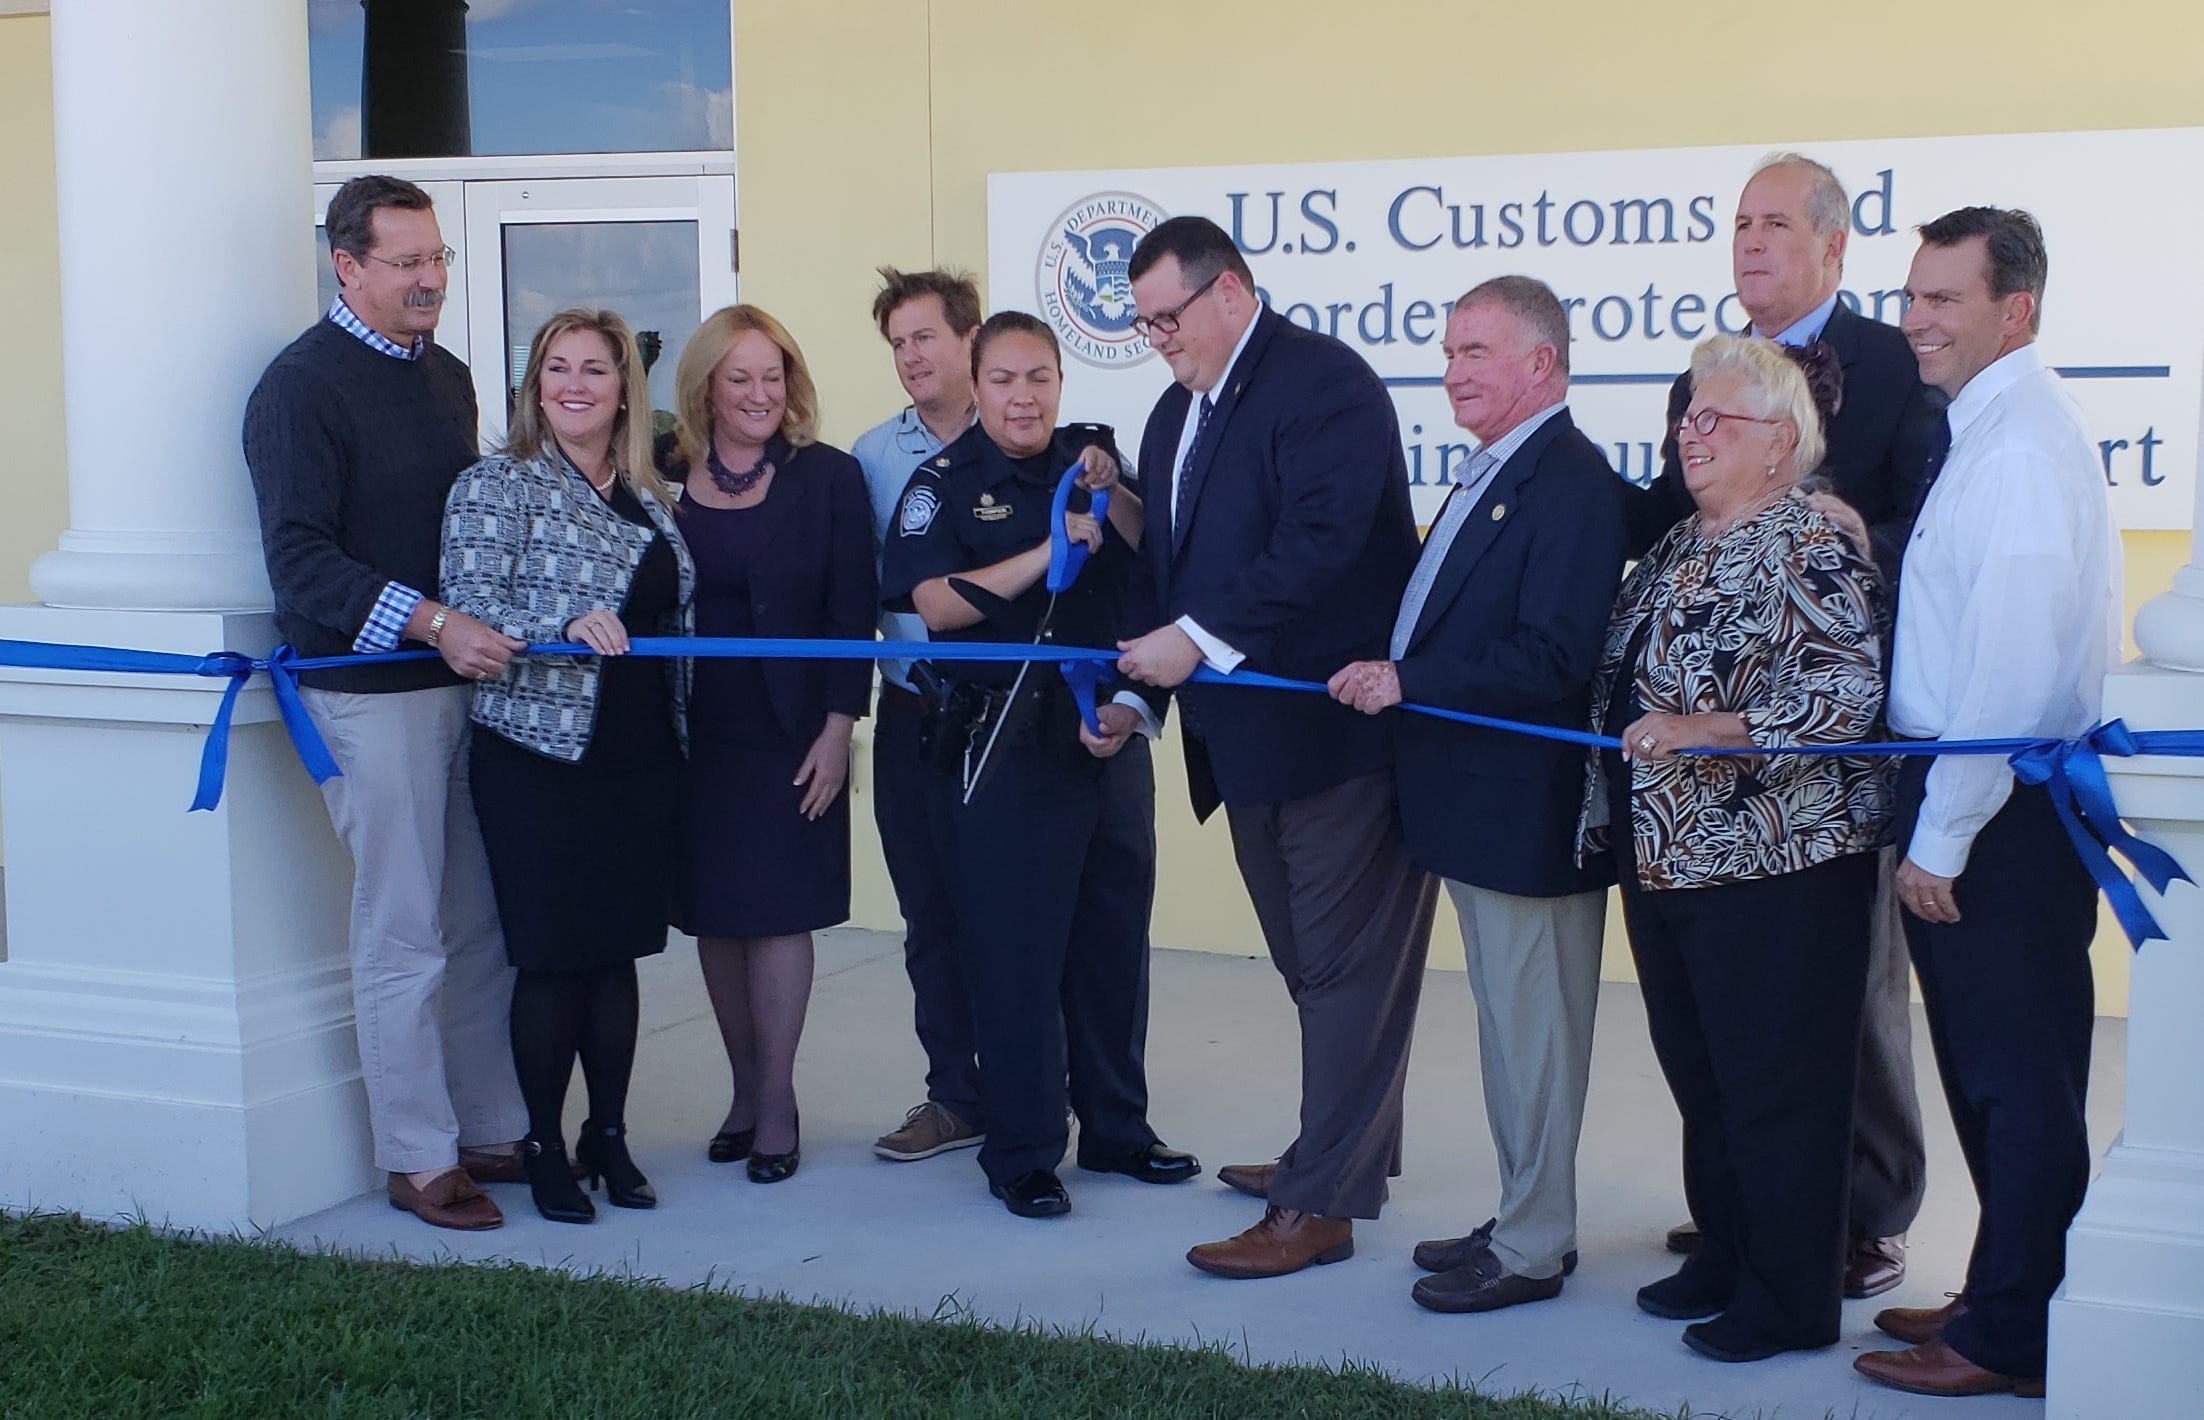 Martin County officials celebrated a ribbon cutting event for the U.S. Customs facility located at the Stuart Airport in December. The facility opened this week.